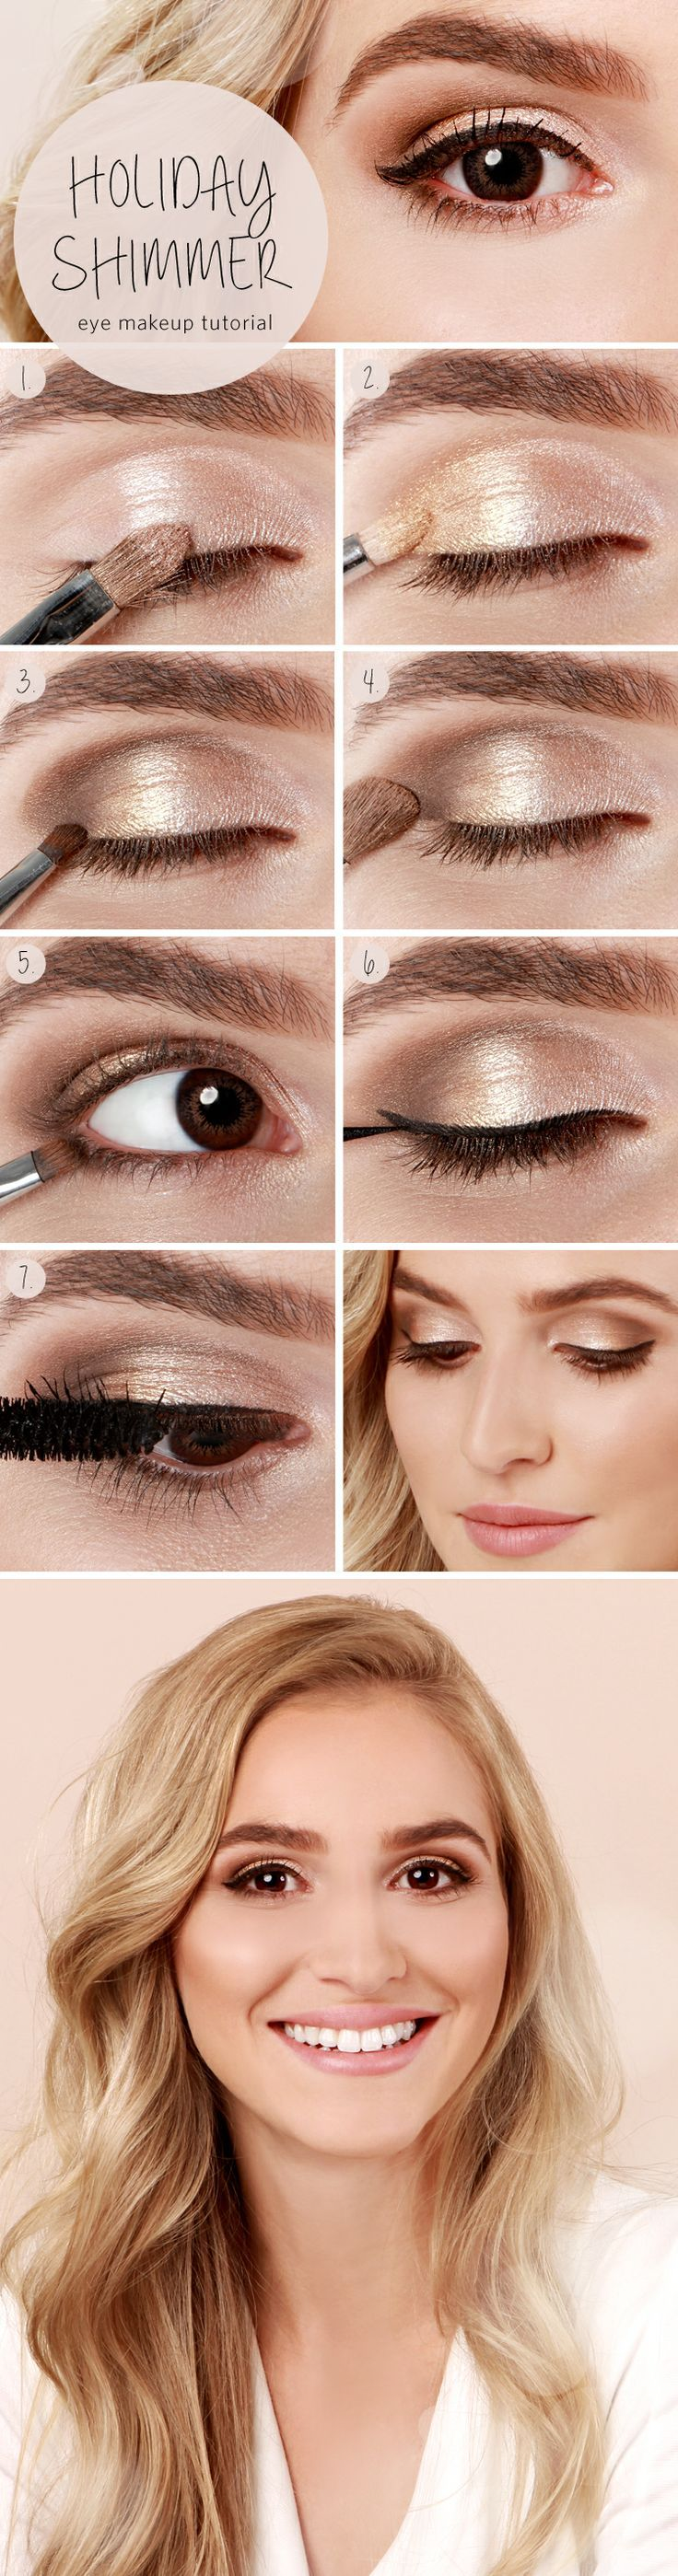 Holiday Shimmer Eye Tutorial http://sulia.com/my_thoughts/924d1112-a05c-4e8a-b04b-fe11b8af1043/?pinner=125515443&